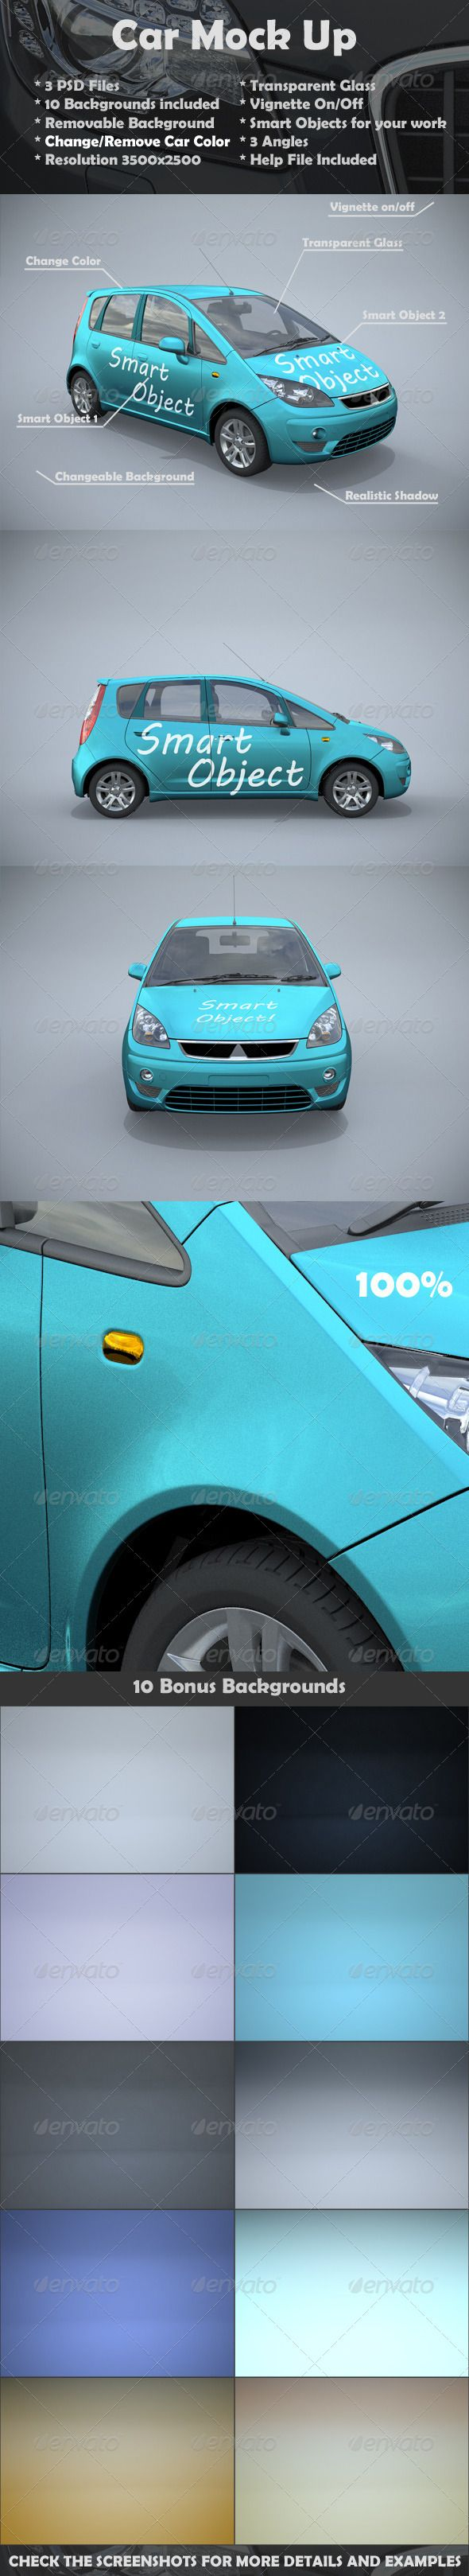 Background image email support - Car Mock Up 3 Psd Files Removable Backgrounds Change Remove Car Color Realistic Shadows